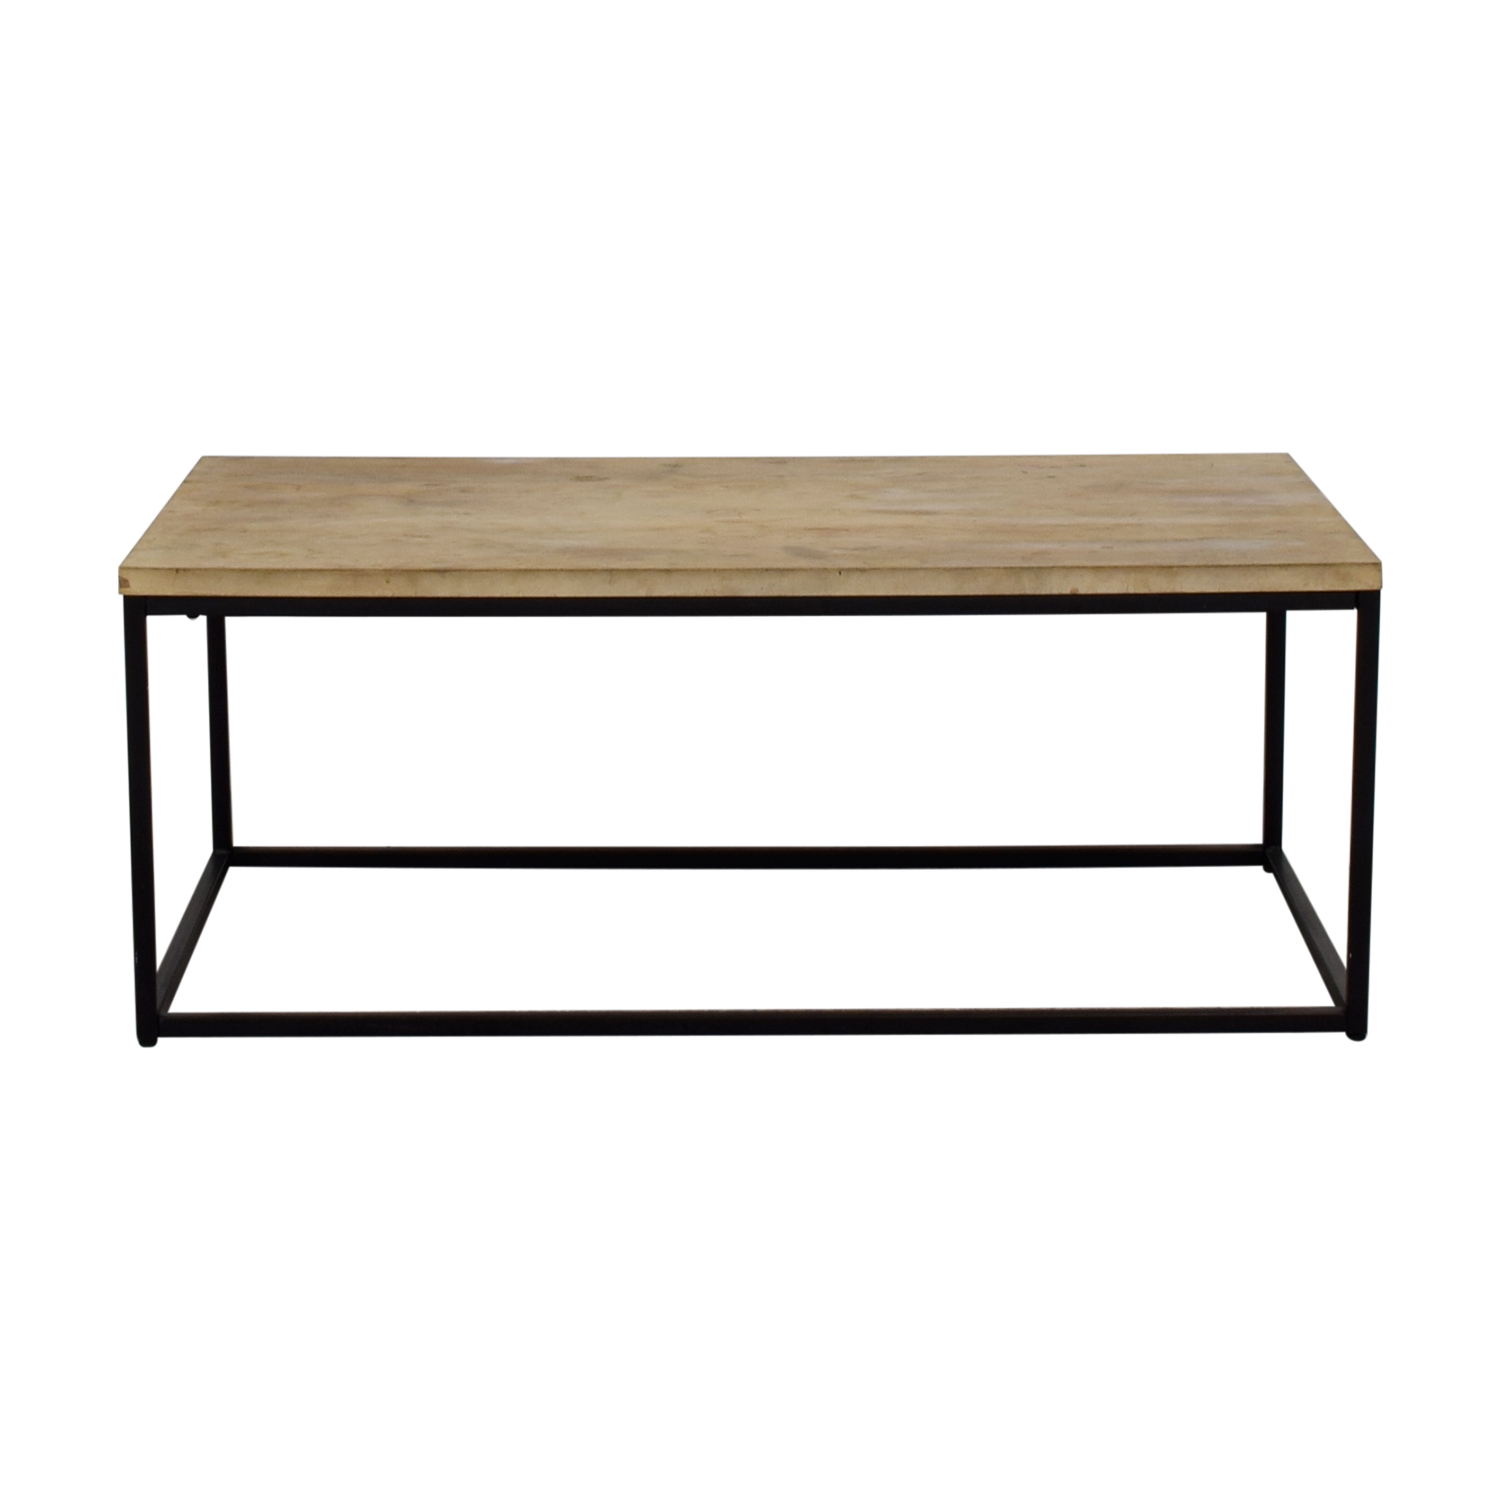 West Elm West Elm Box Frame Wooden Coffee Table Tan